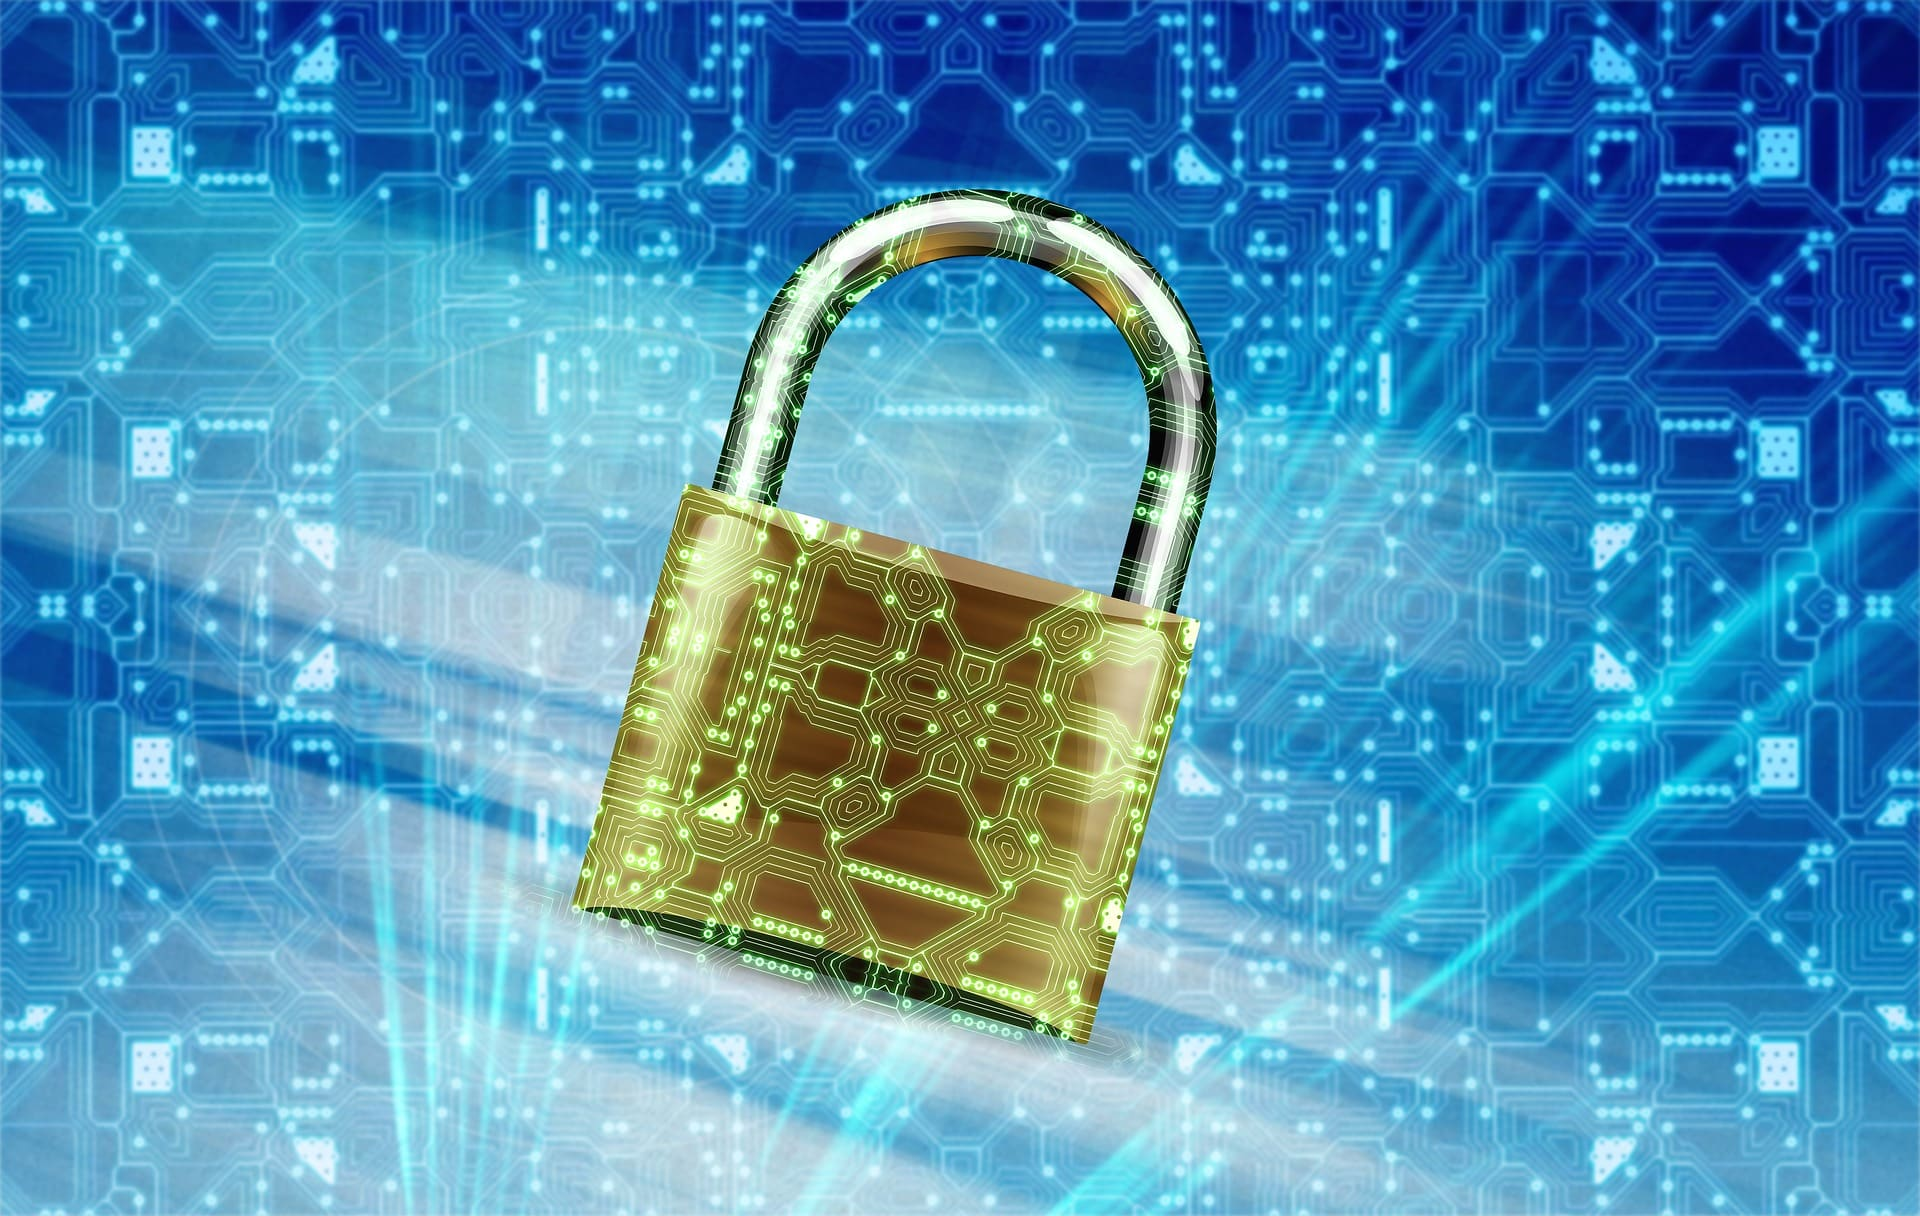 Padlock on a digital background